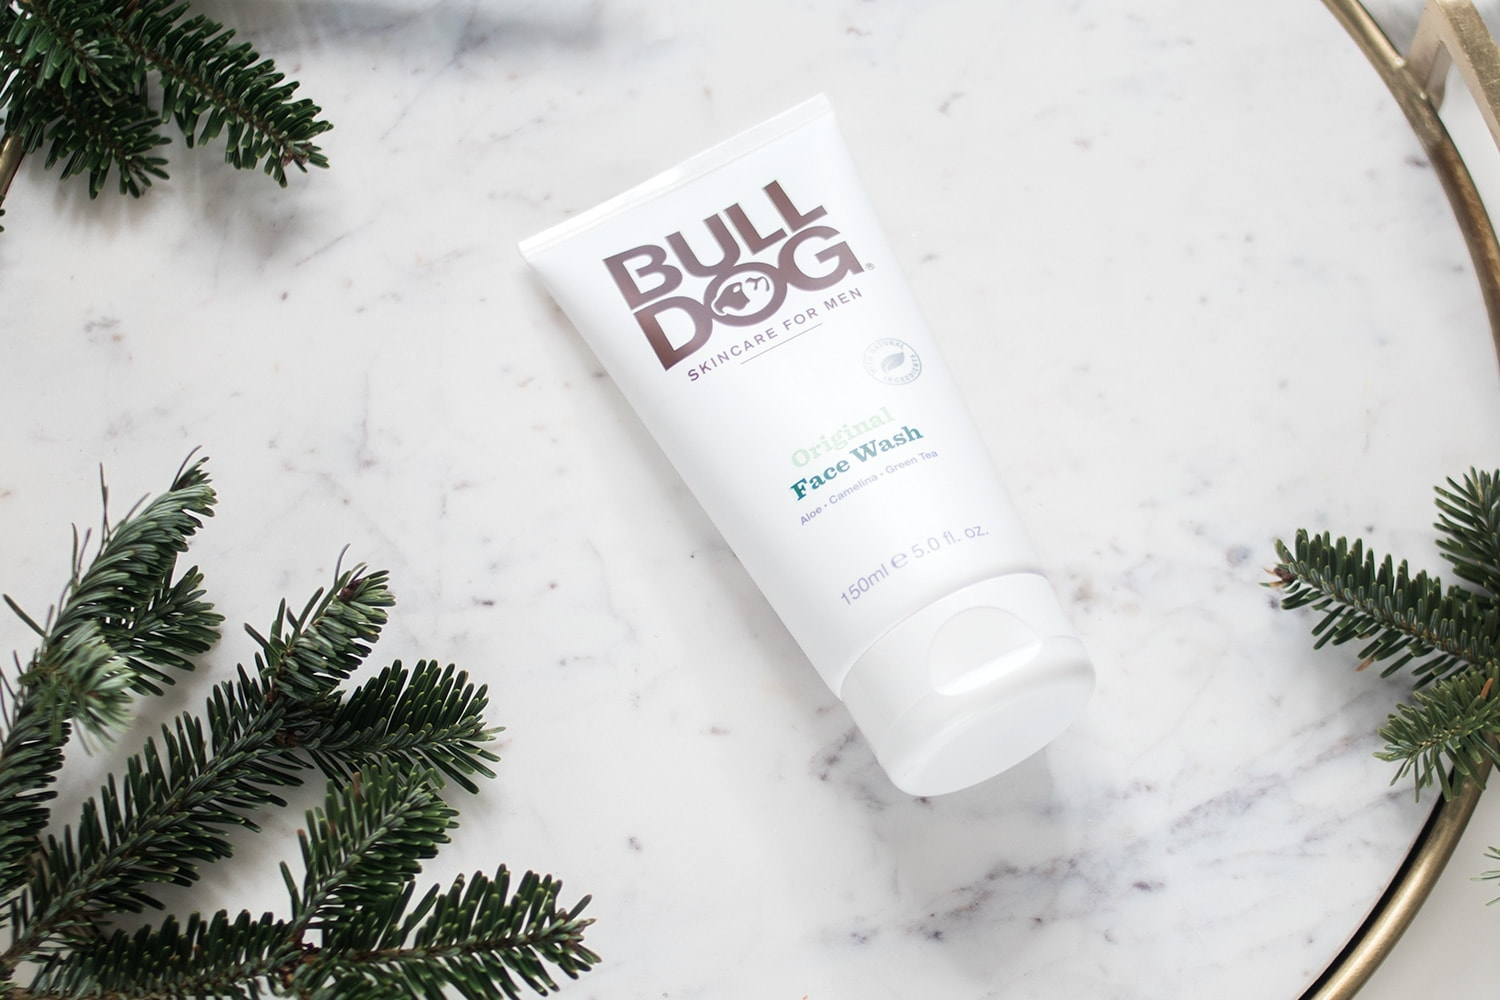 Houston blogger Meg O. on the Go shows us that men's face wash is a great stocking stuffer idea